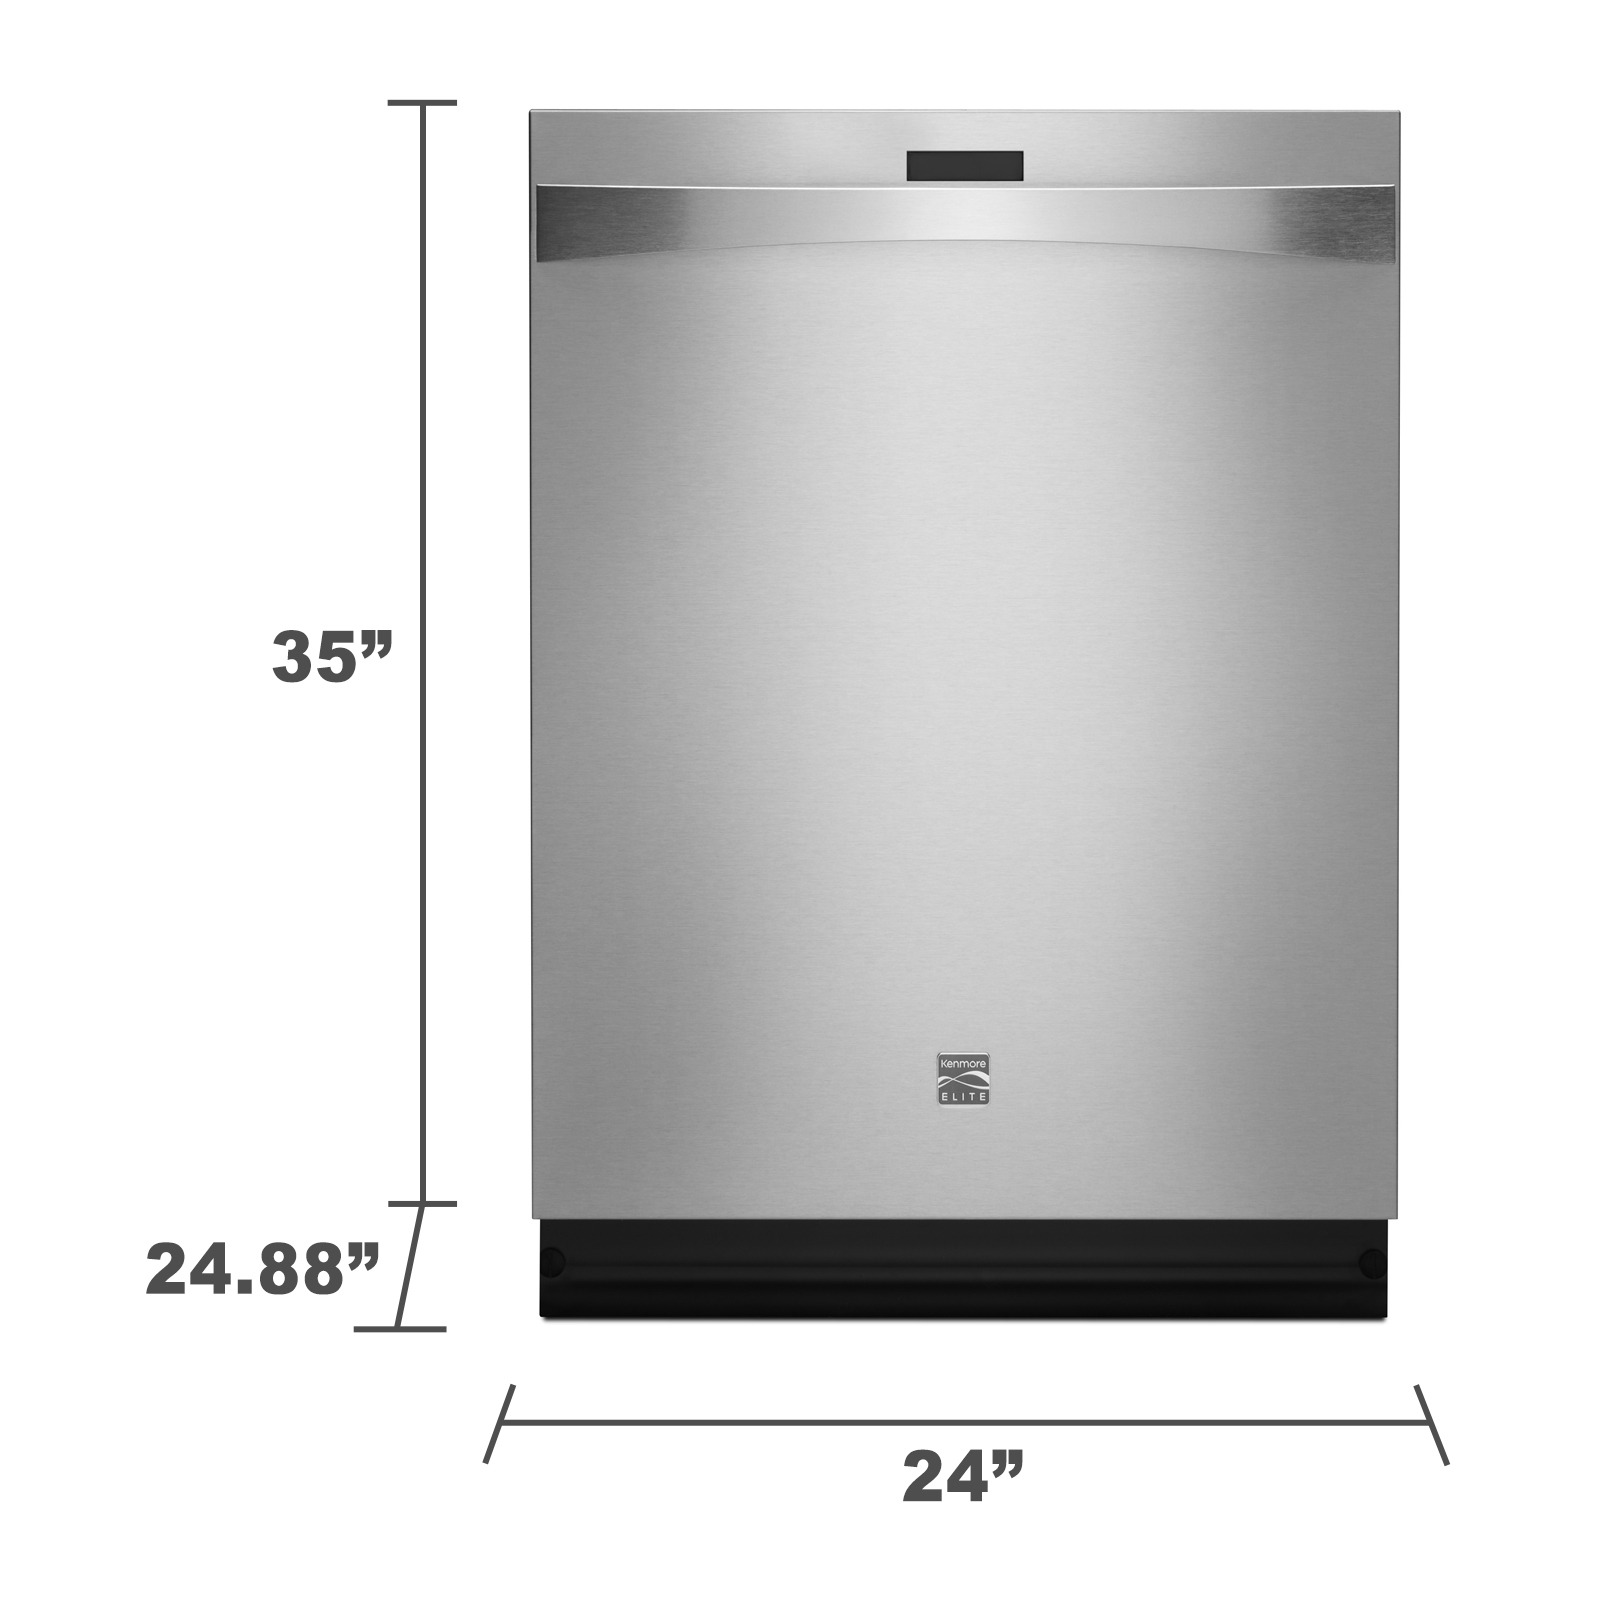 "Kenmore Elite 12793 24"" Built-In Dishwasher - Stainless Steel"